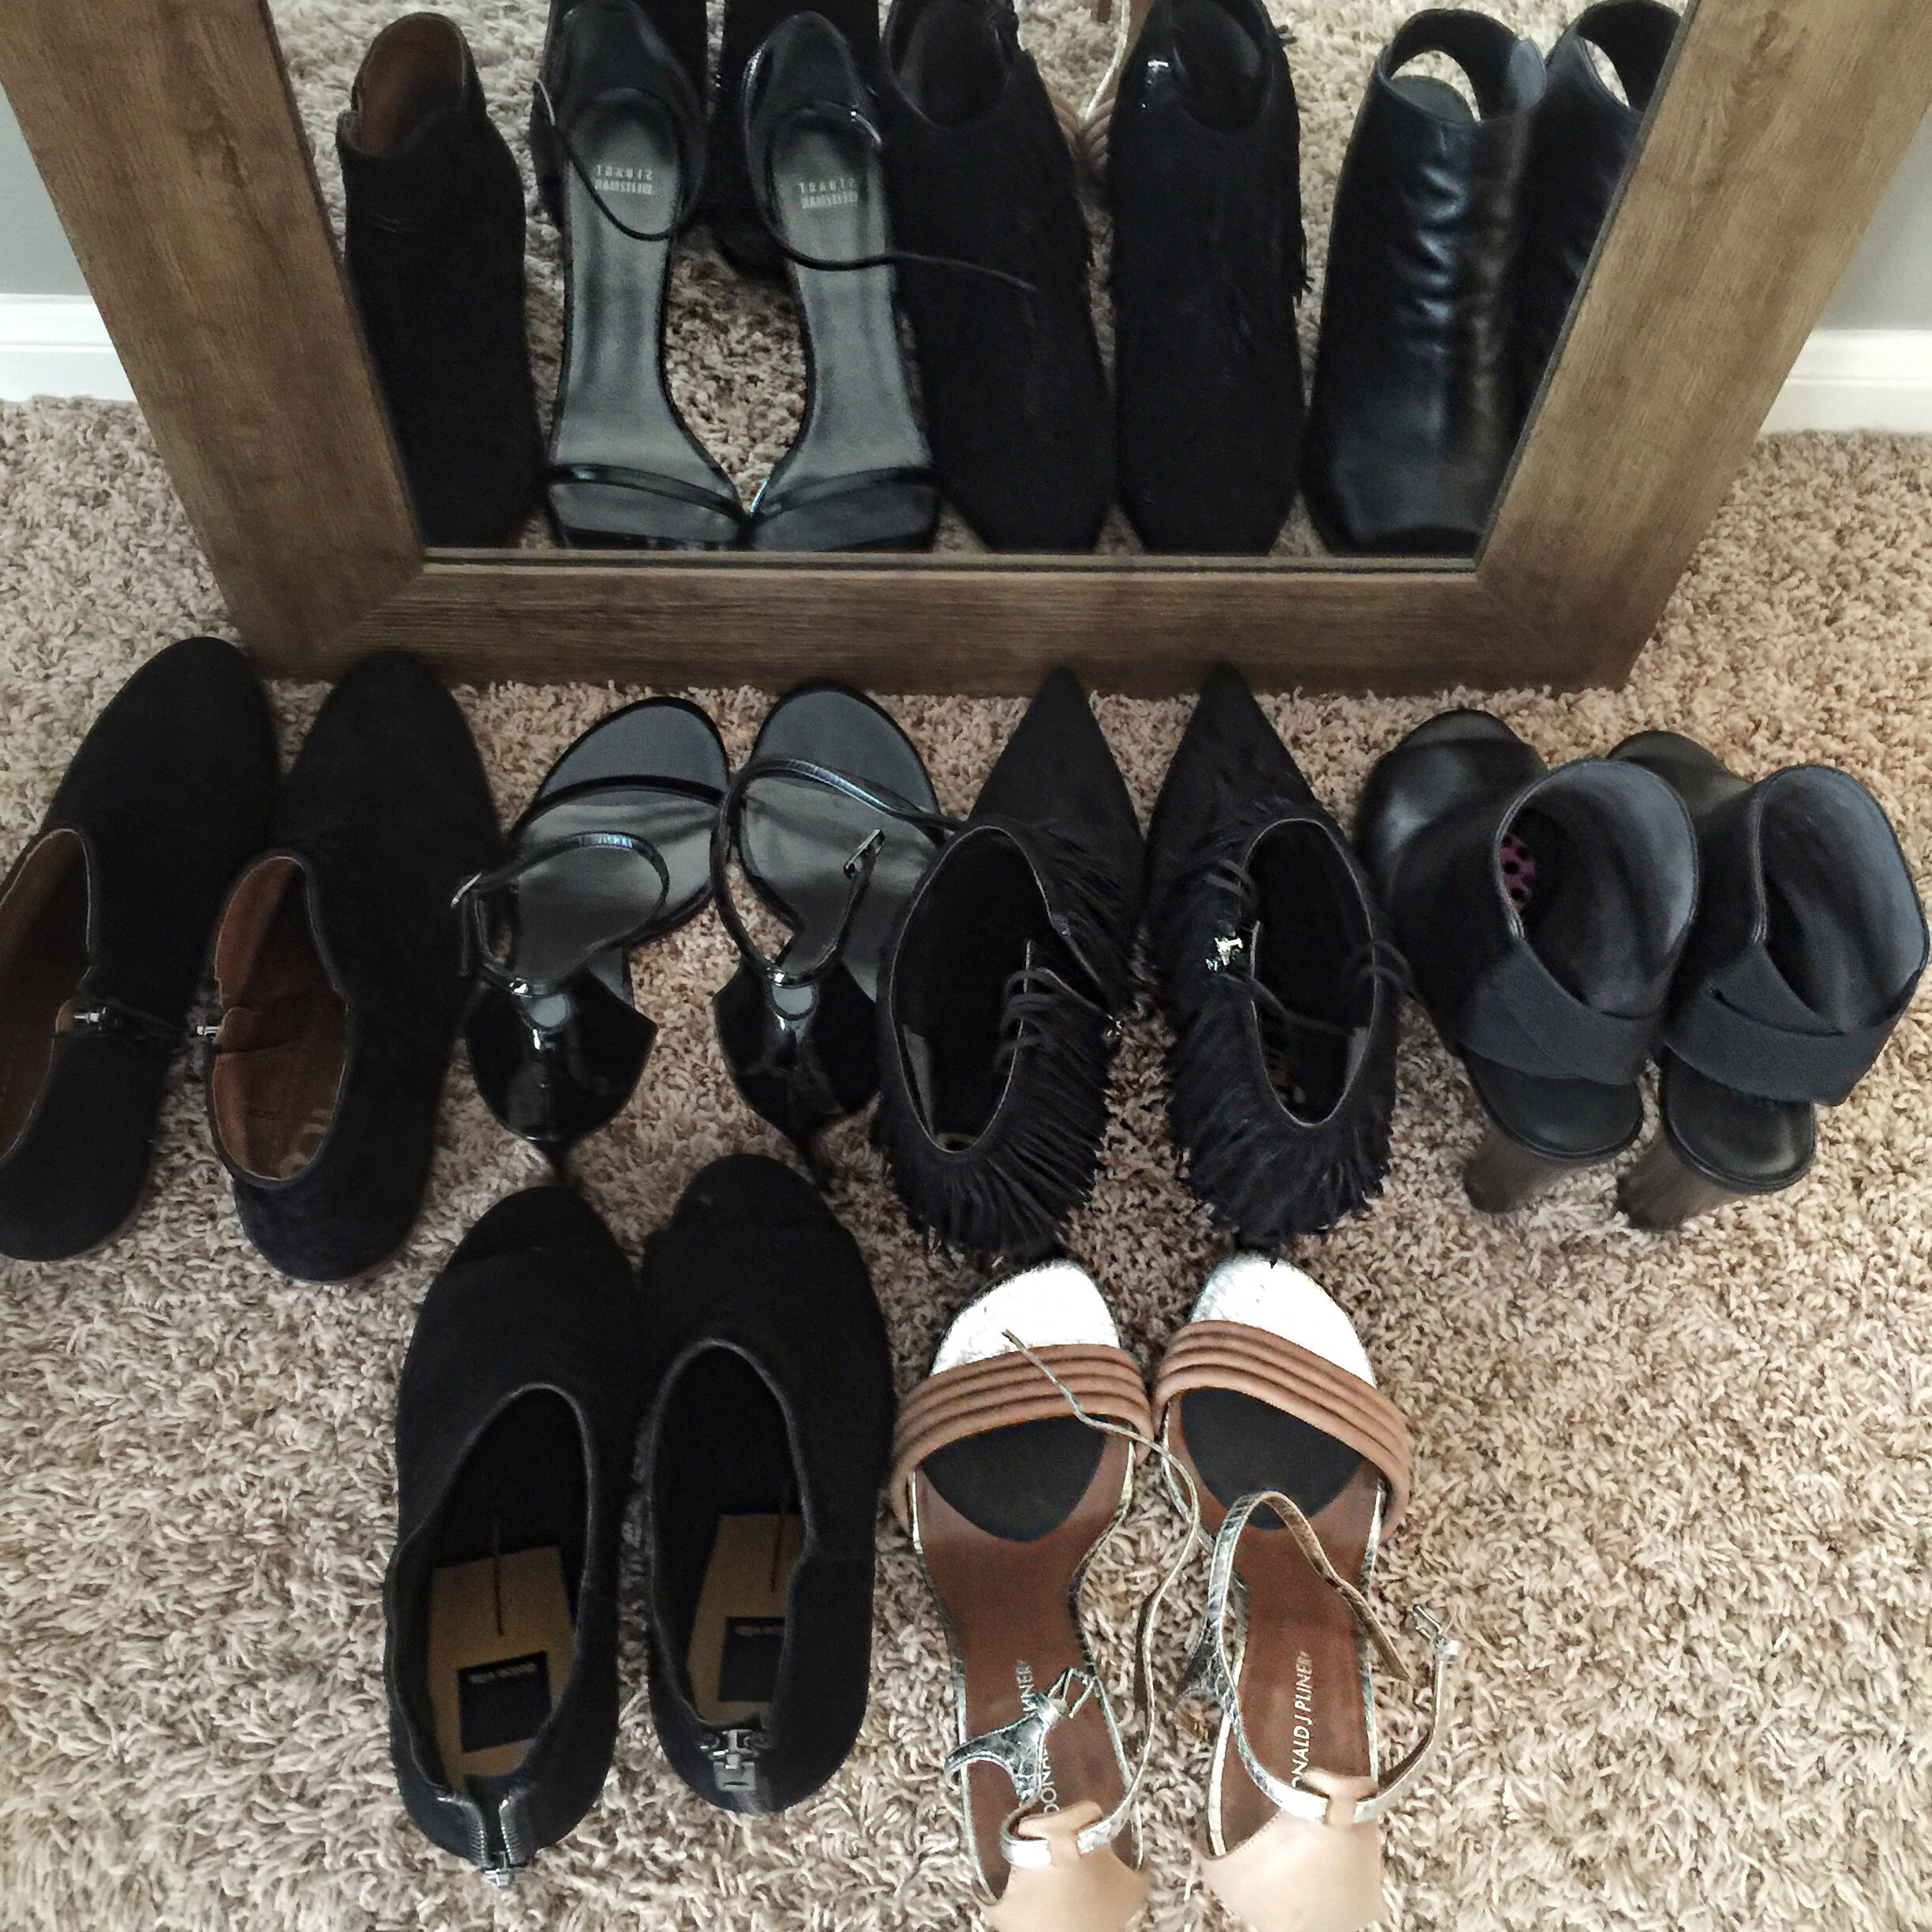 Bring on the shoe choices!